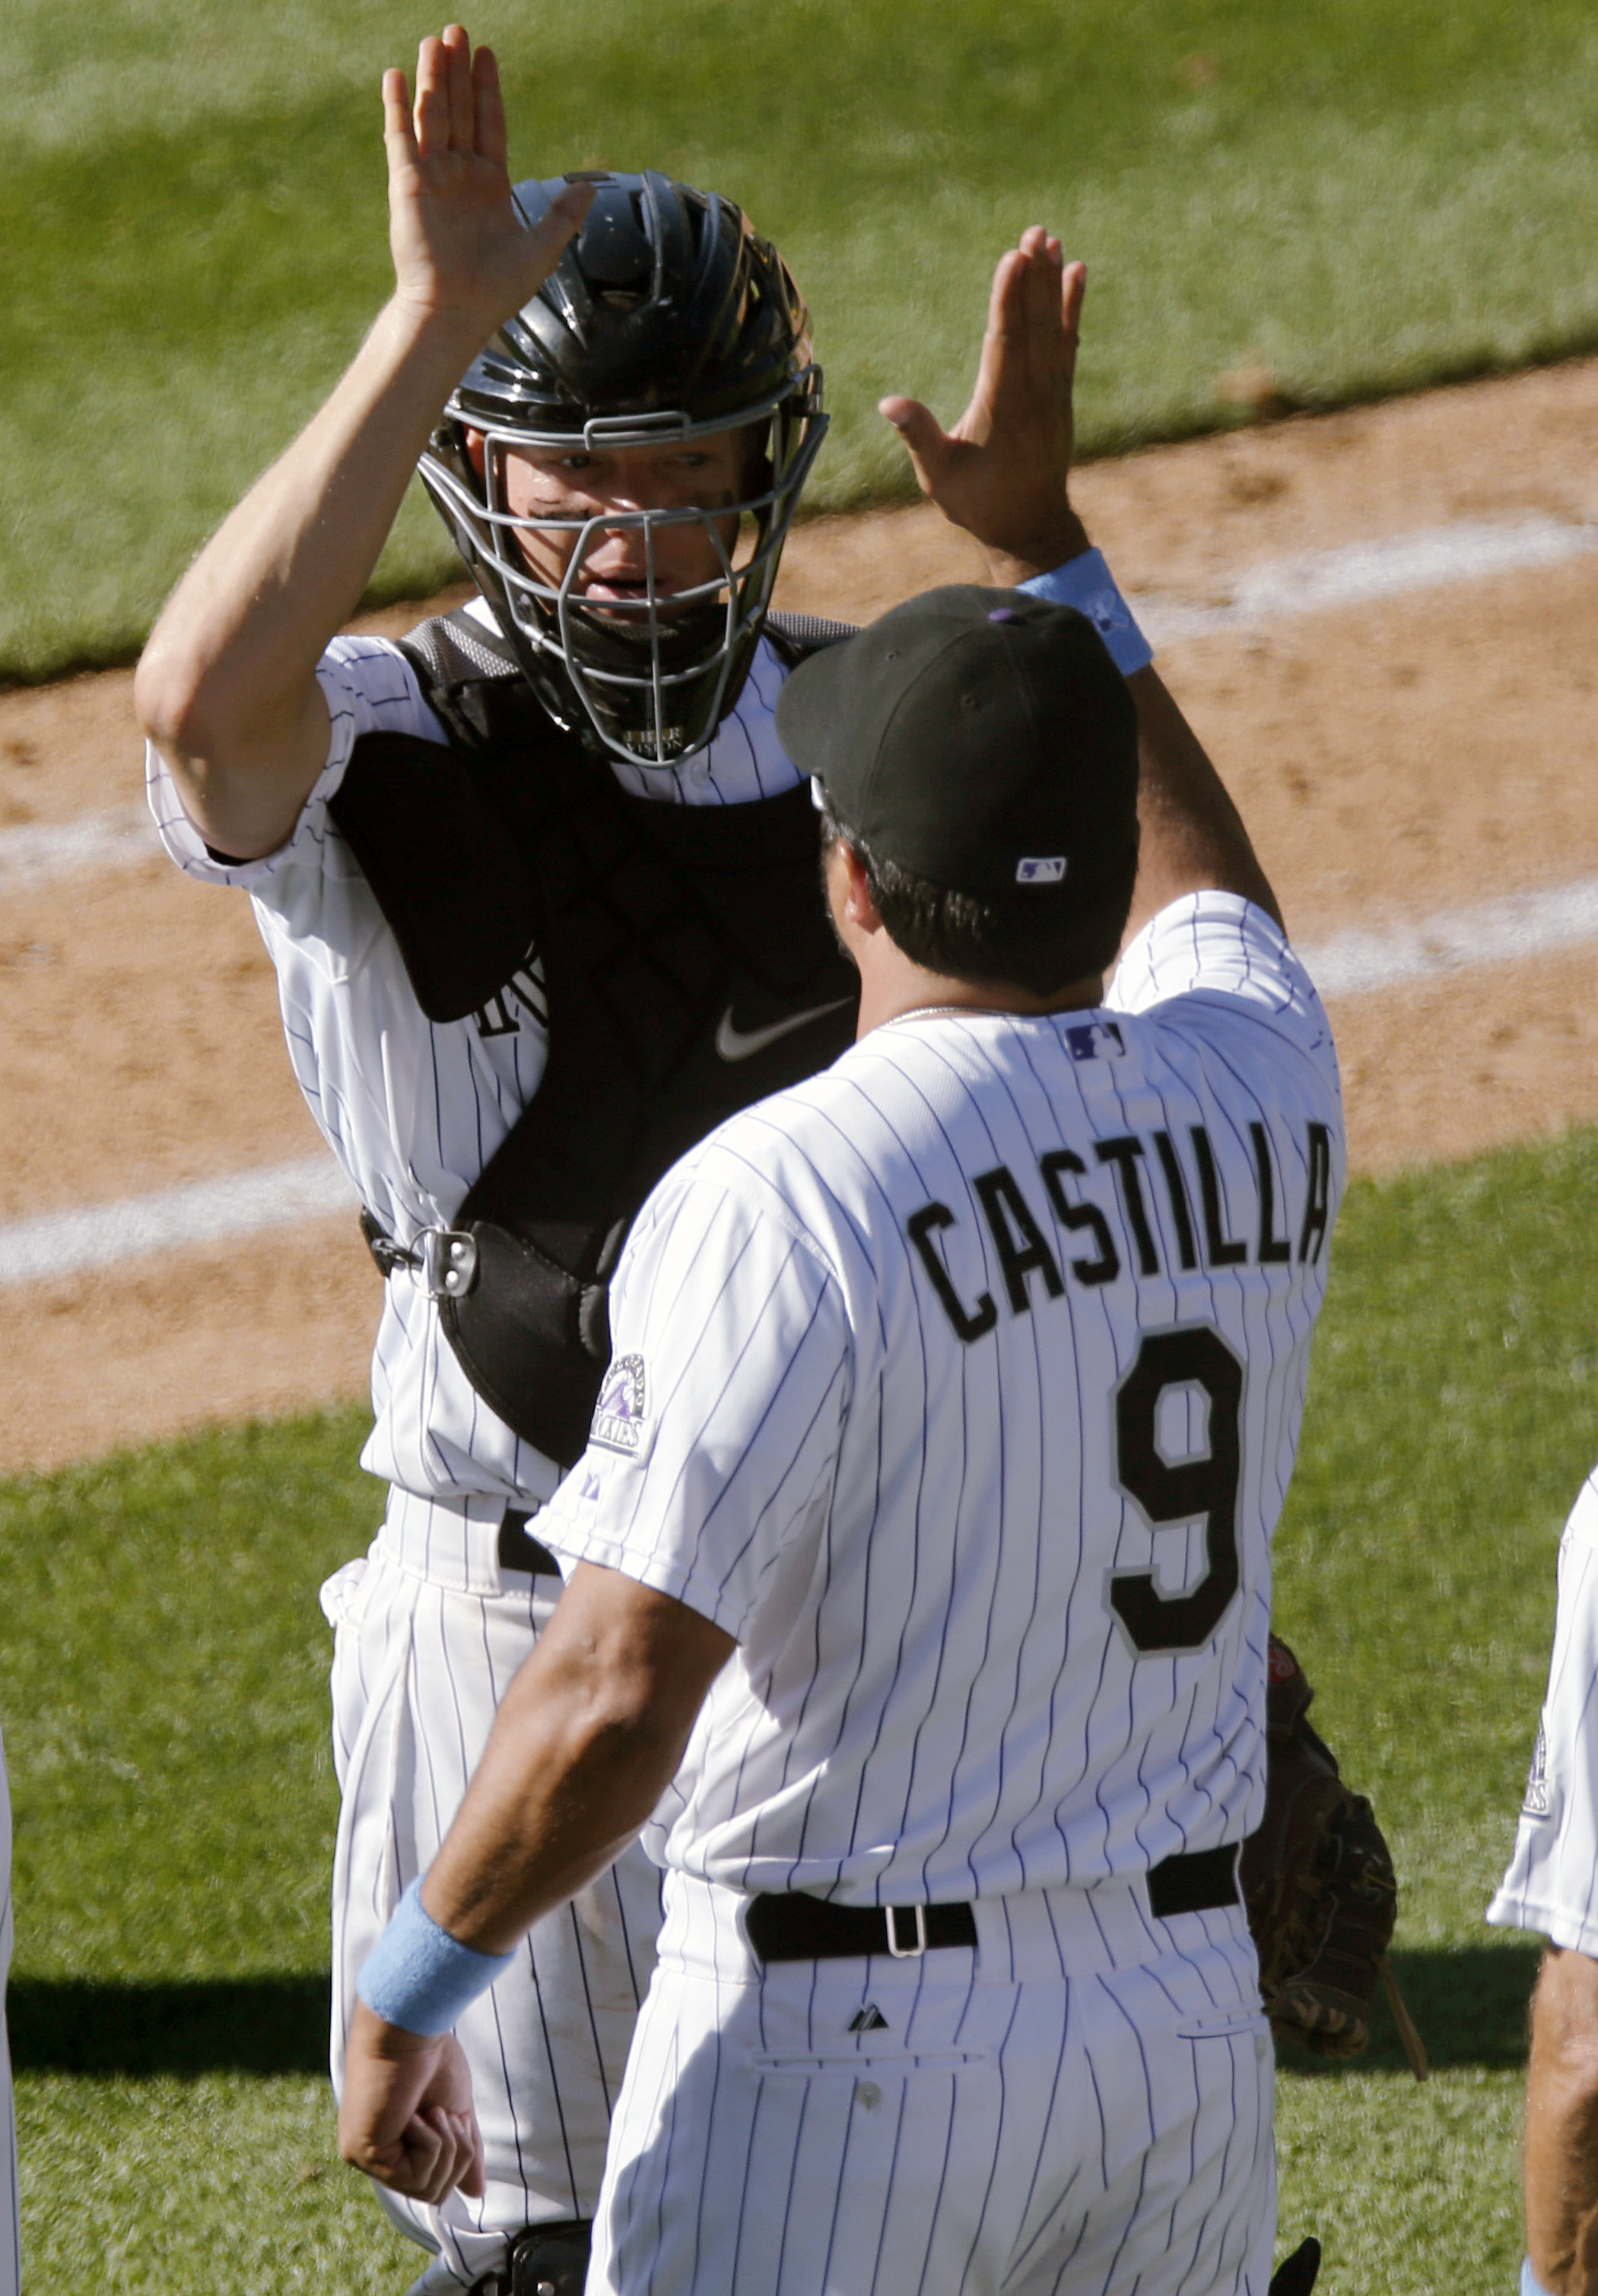 Colorado Rockies catcher Nick Hundley, back, is congratulated by team special assistant Vinny Castilla after retiring the Milwaukee Brewers in the ninth inning of a baseball game Sunday, June 21, 2015, in Denver. Colorado won 10-4. (AP Photo/David Zalubow